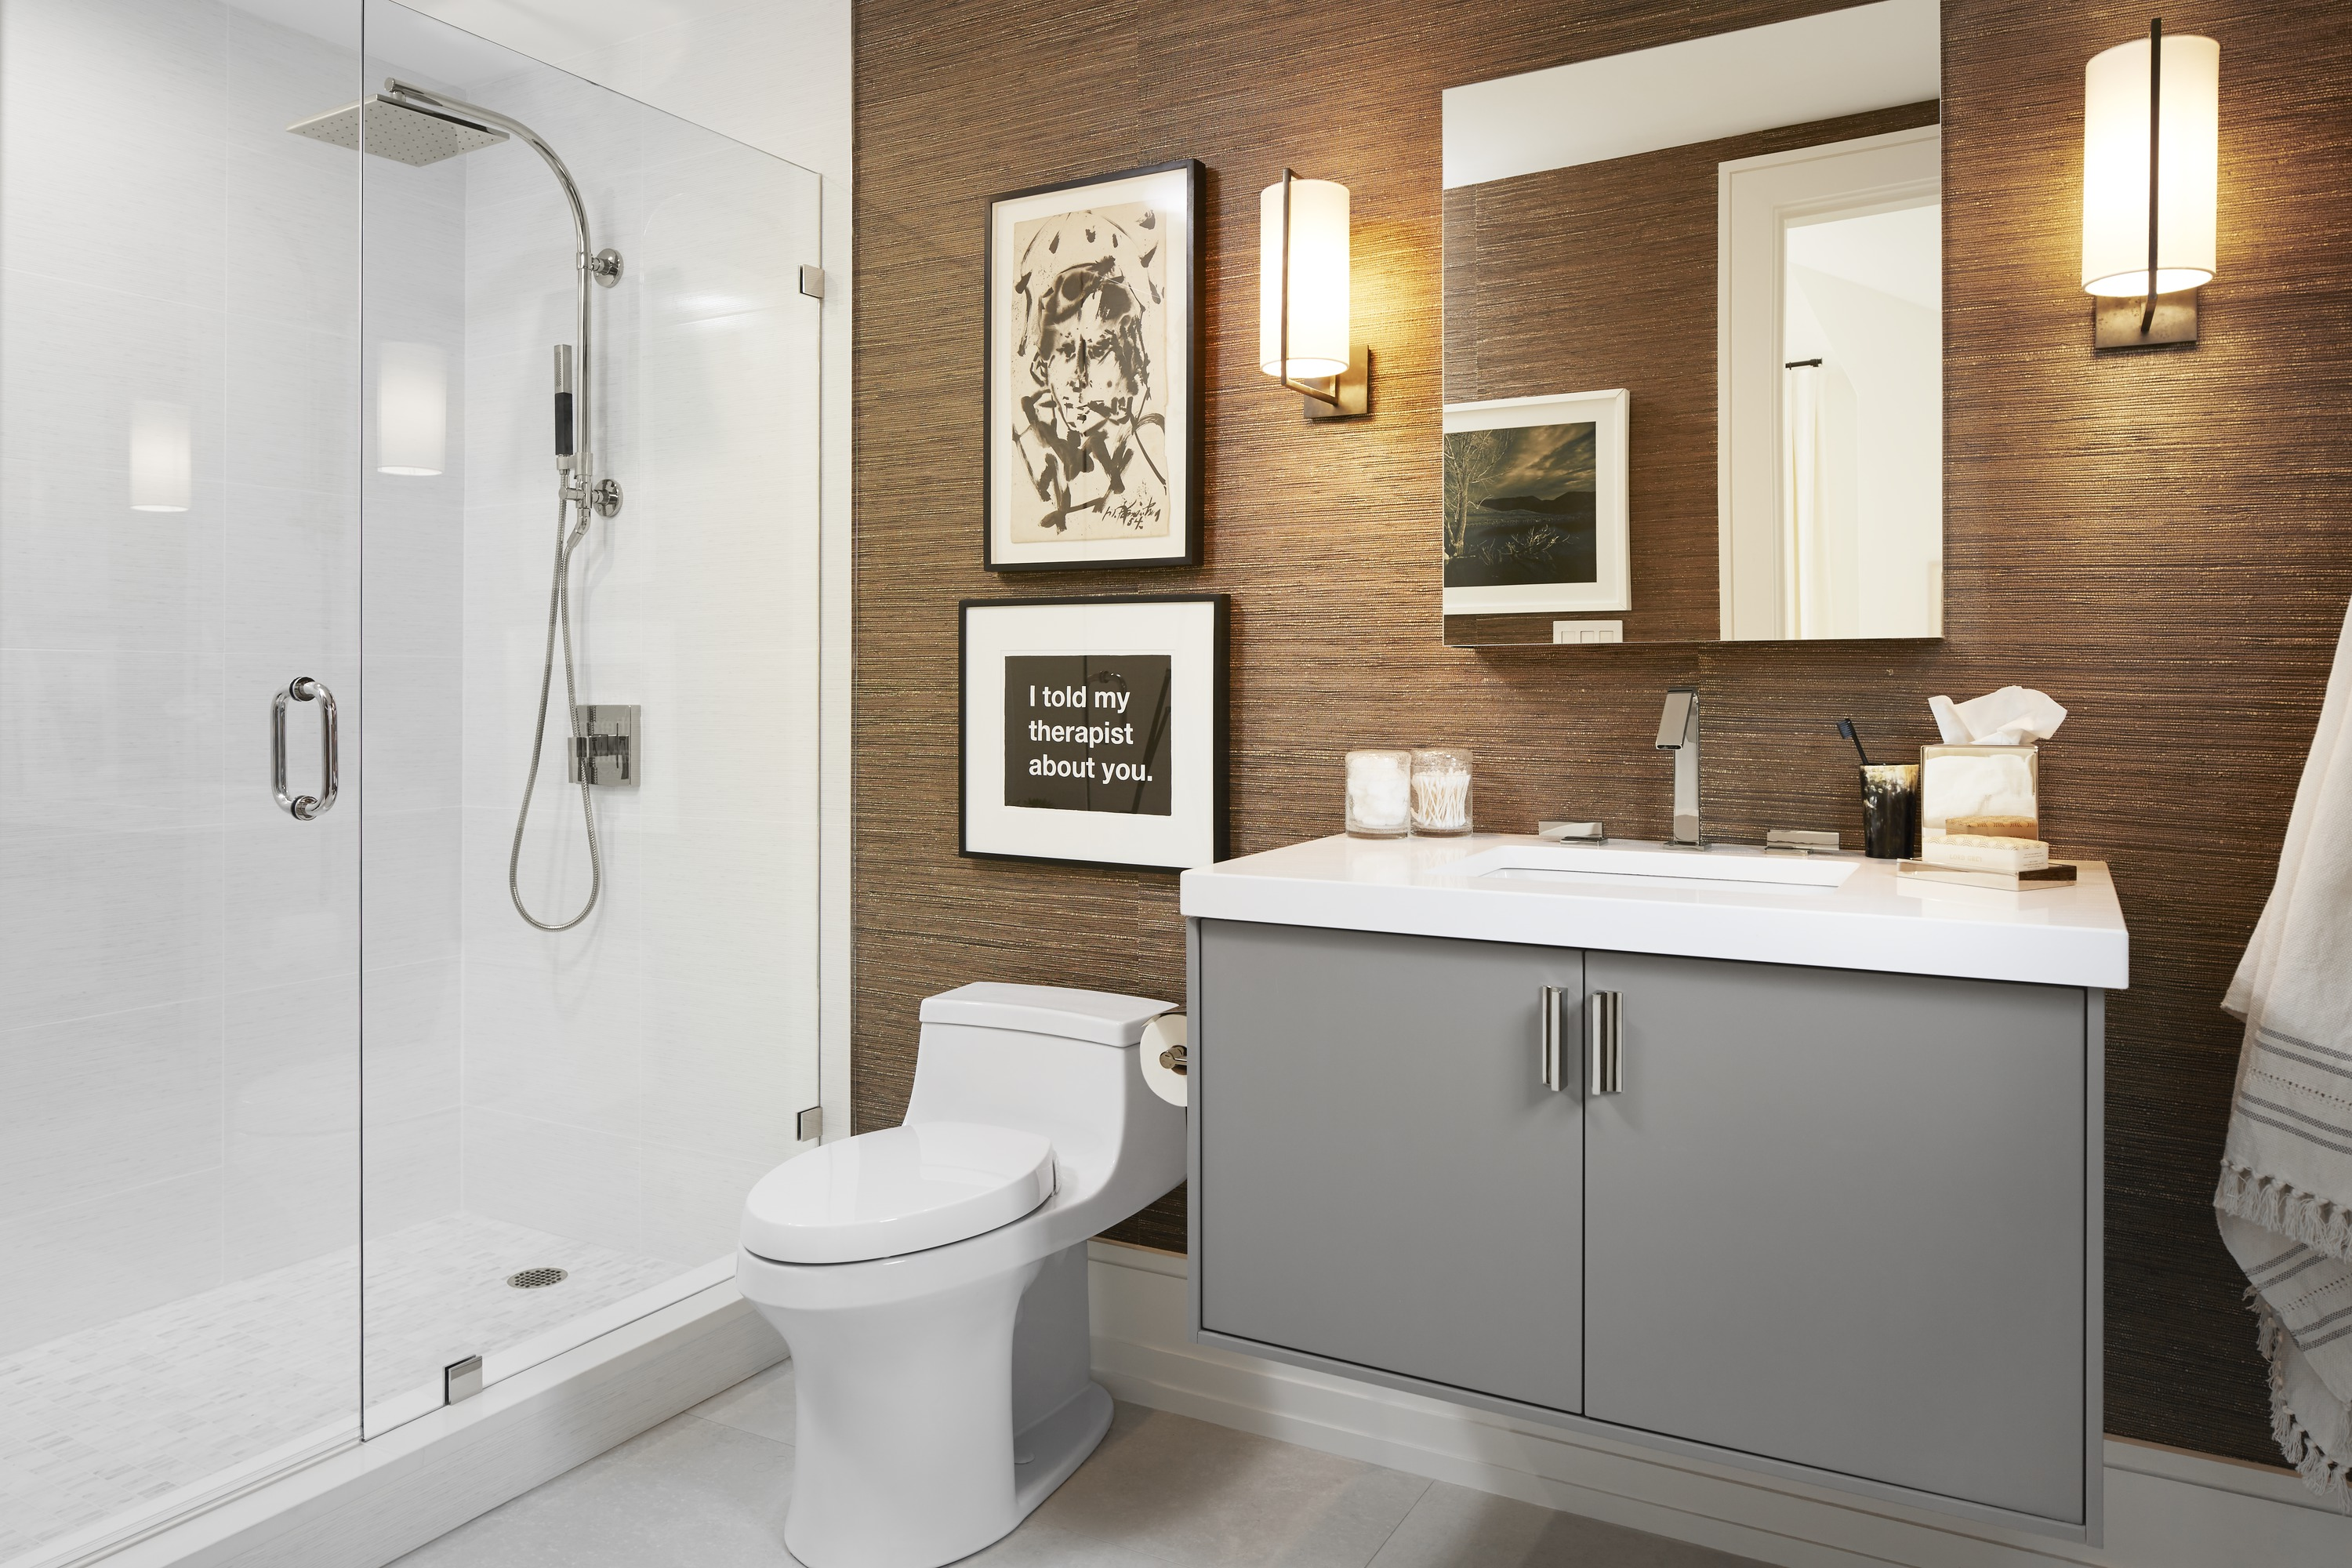 Loure Faucet     Jute Vanity     San Souci Toilet     HydroRail-R Shower Column     Contemporary Square Rainhead     Continuing the design vernacular of the bedroom, this en-suite bath features sleek silhouettes and natural grasscloth wallcovering for a grounded contemporary sensibility.